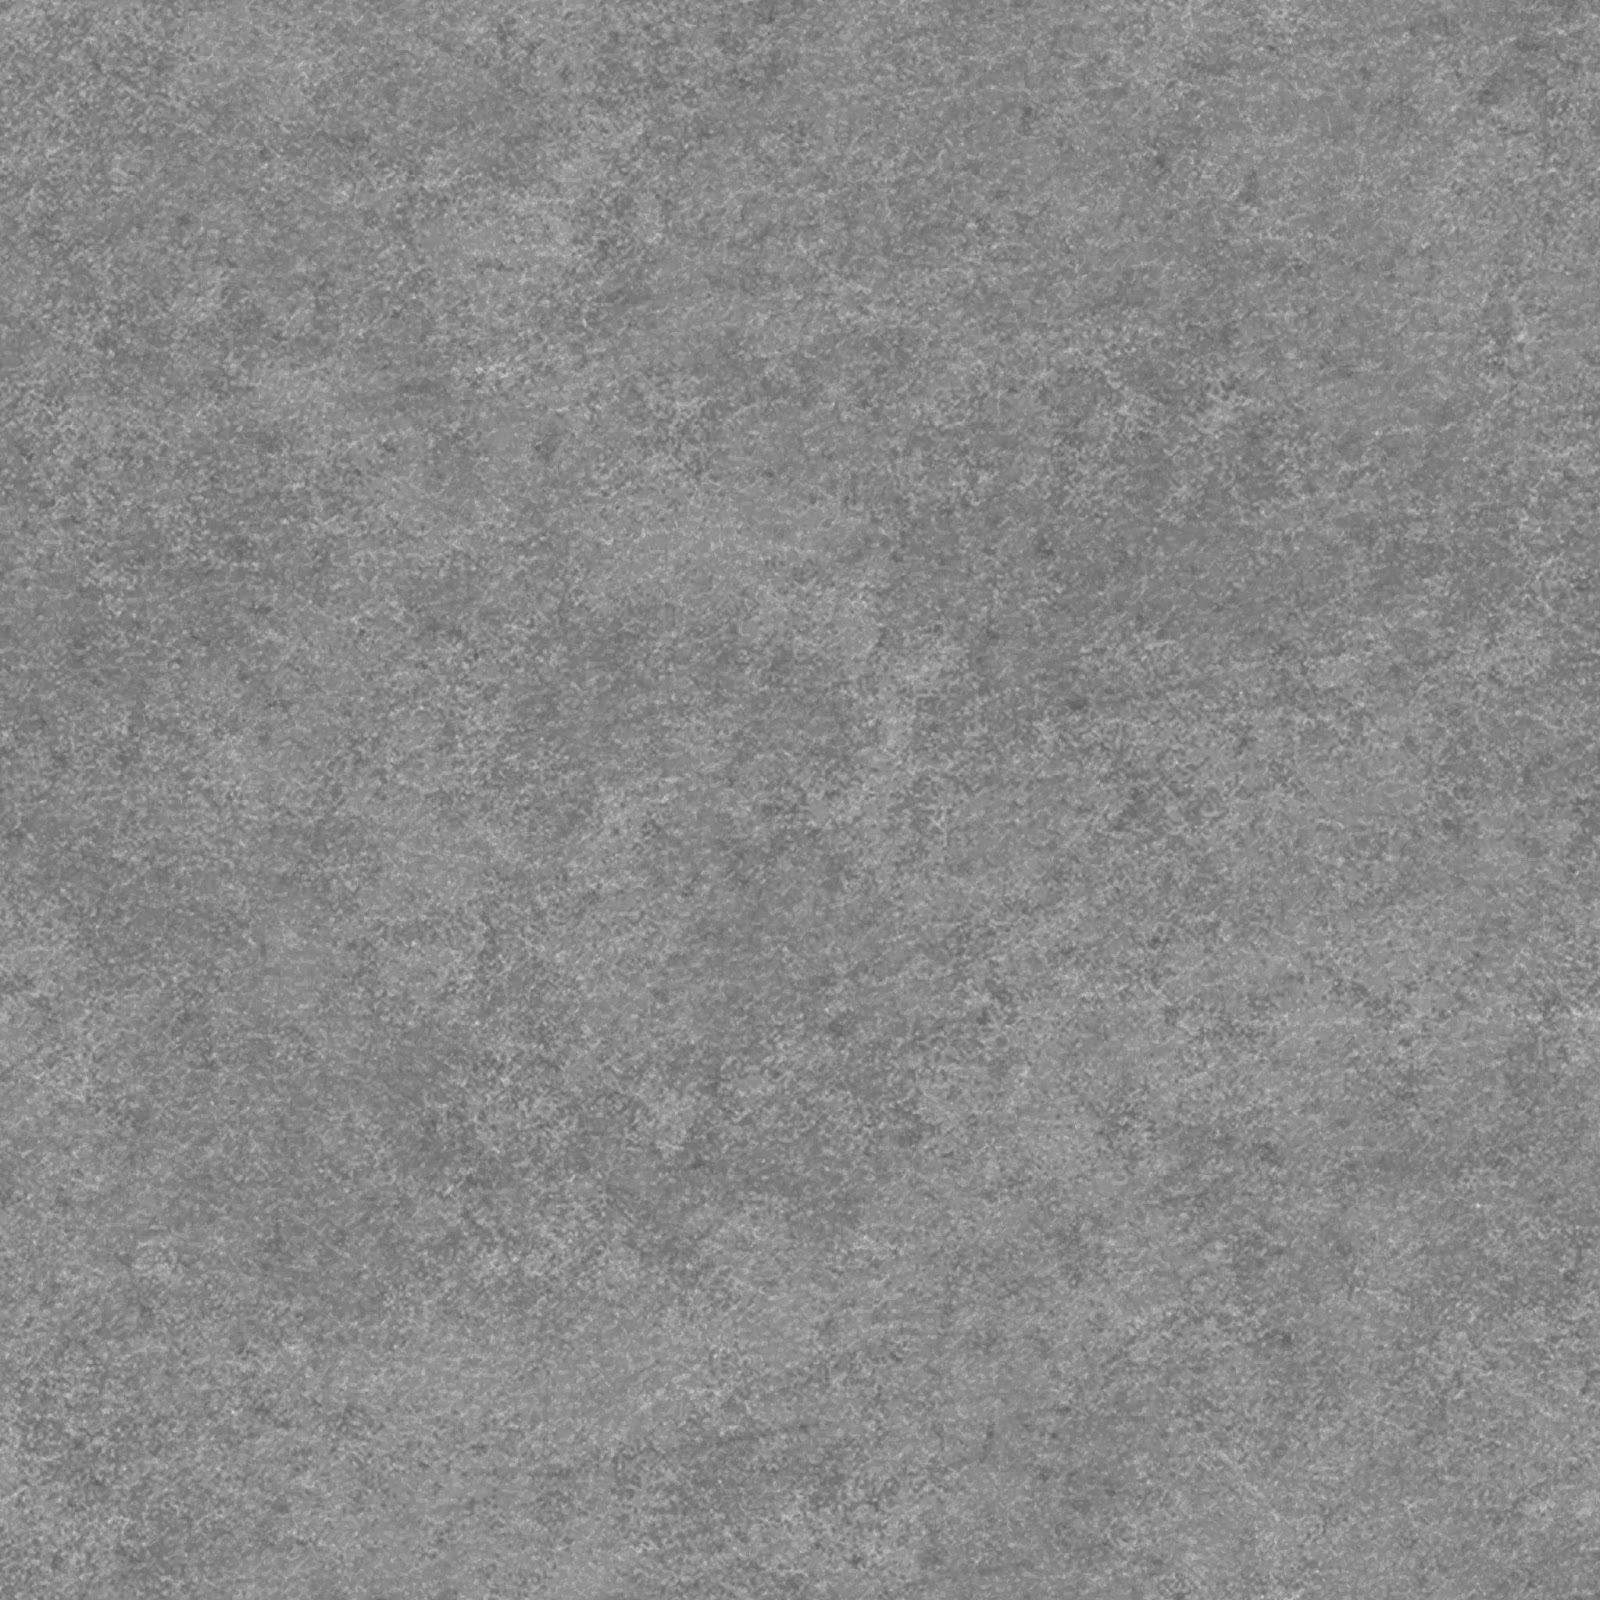 High Resolution Seamless Textures Tileable Metal Texture 16